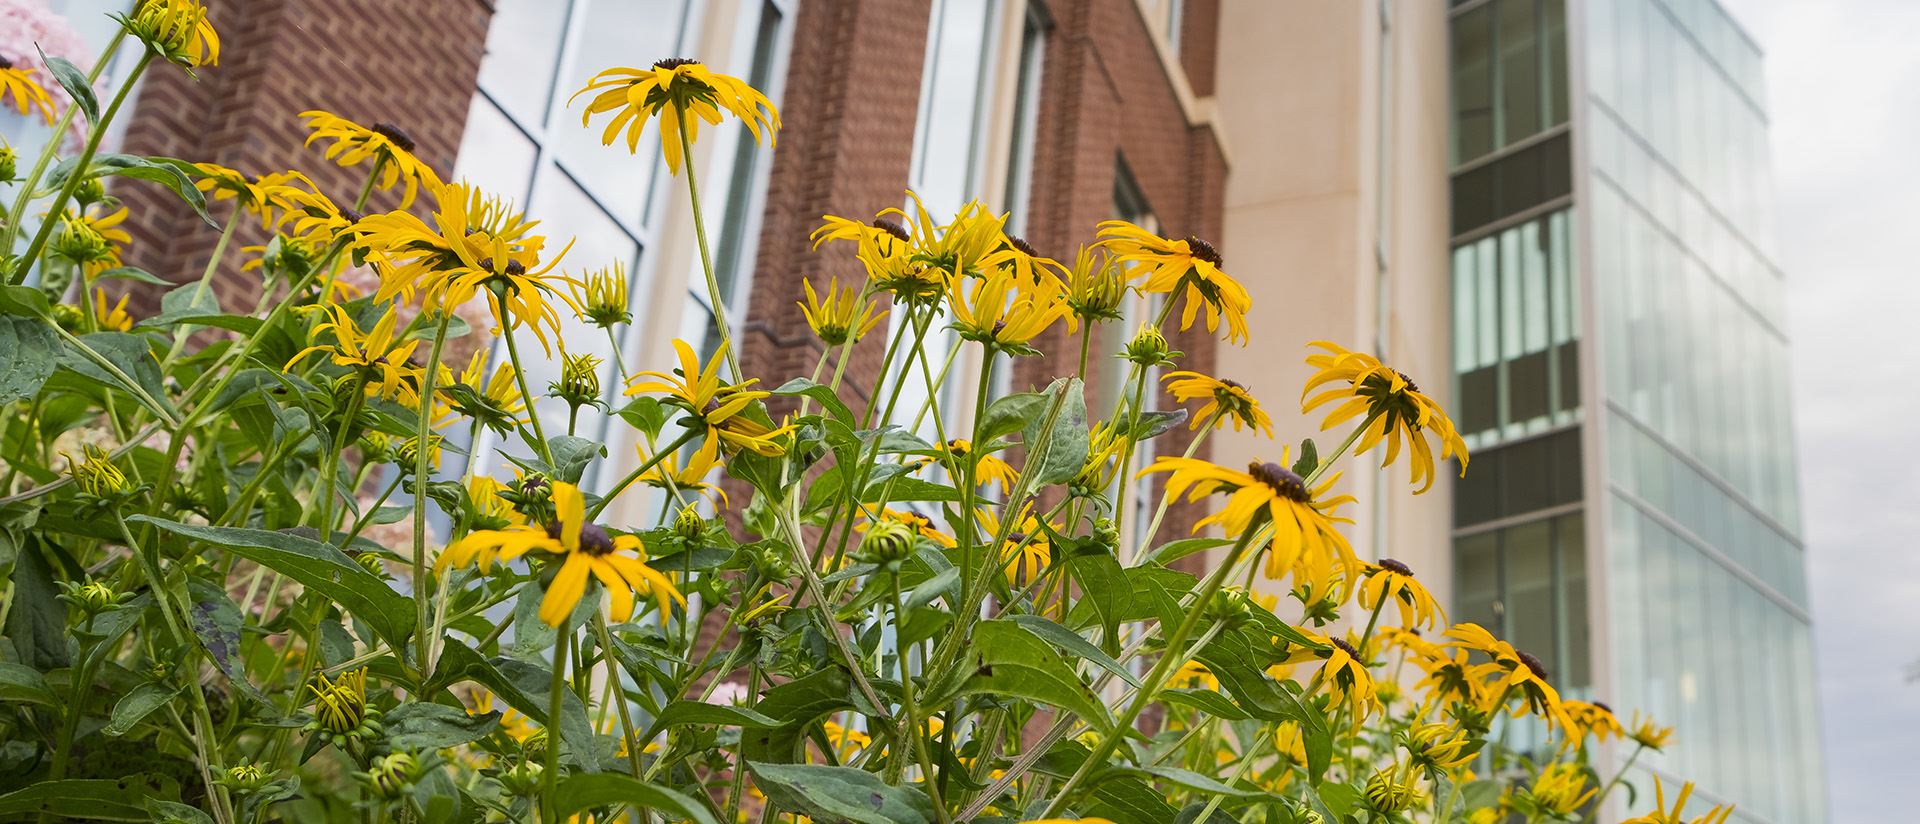 Flowers outside Centennial Hall